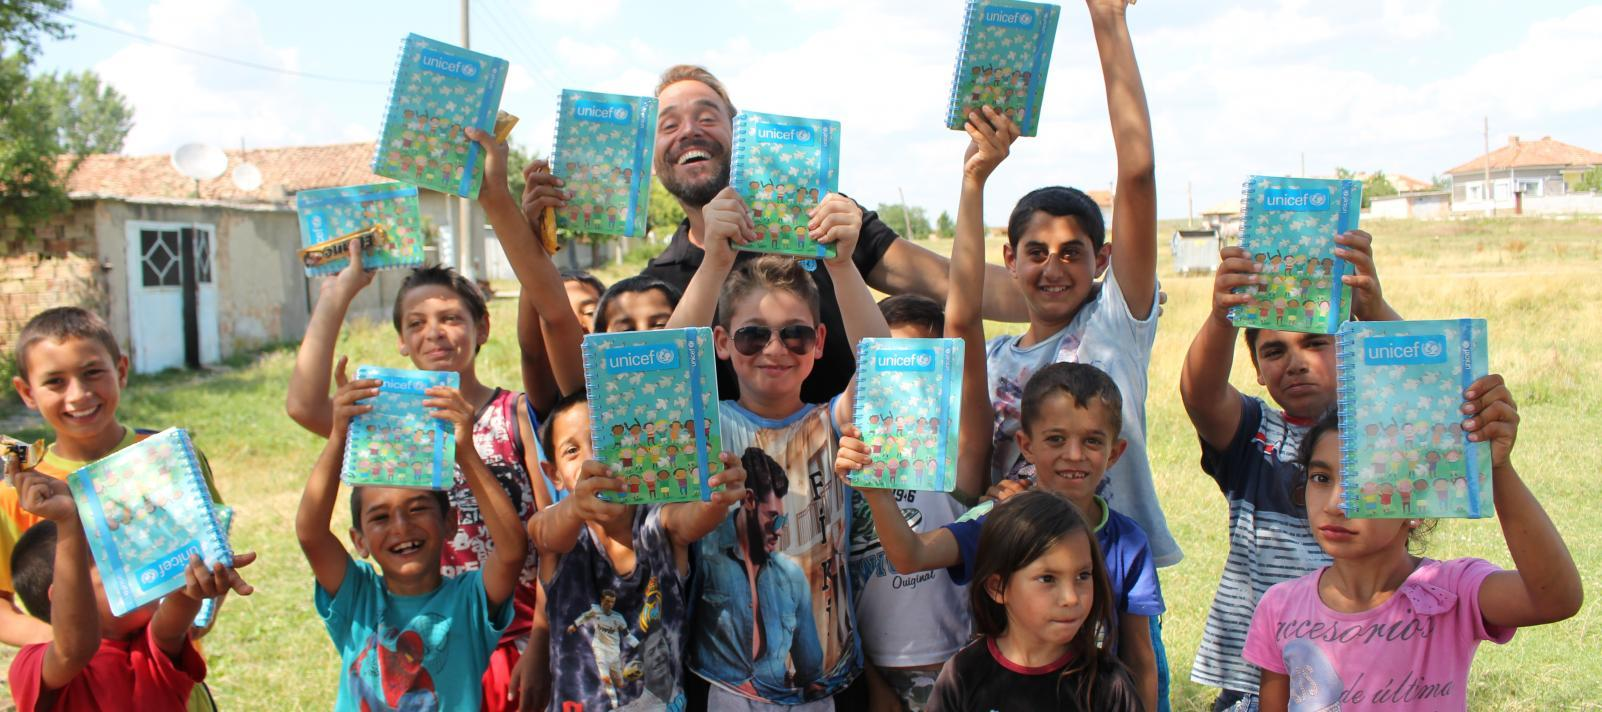 Boys and girls pose with unicef notebooks on the green field.